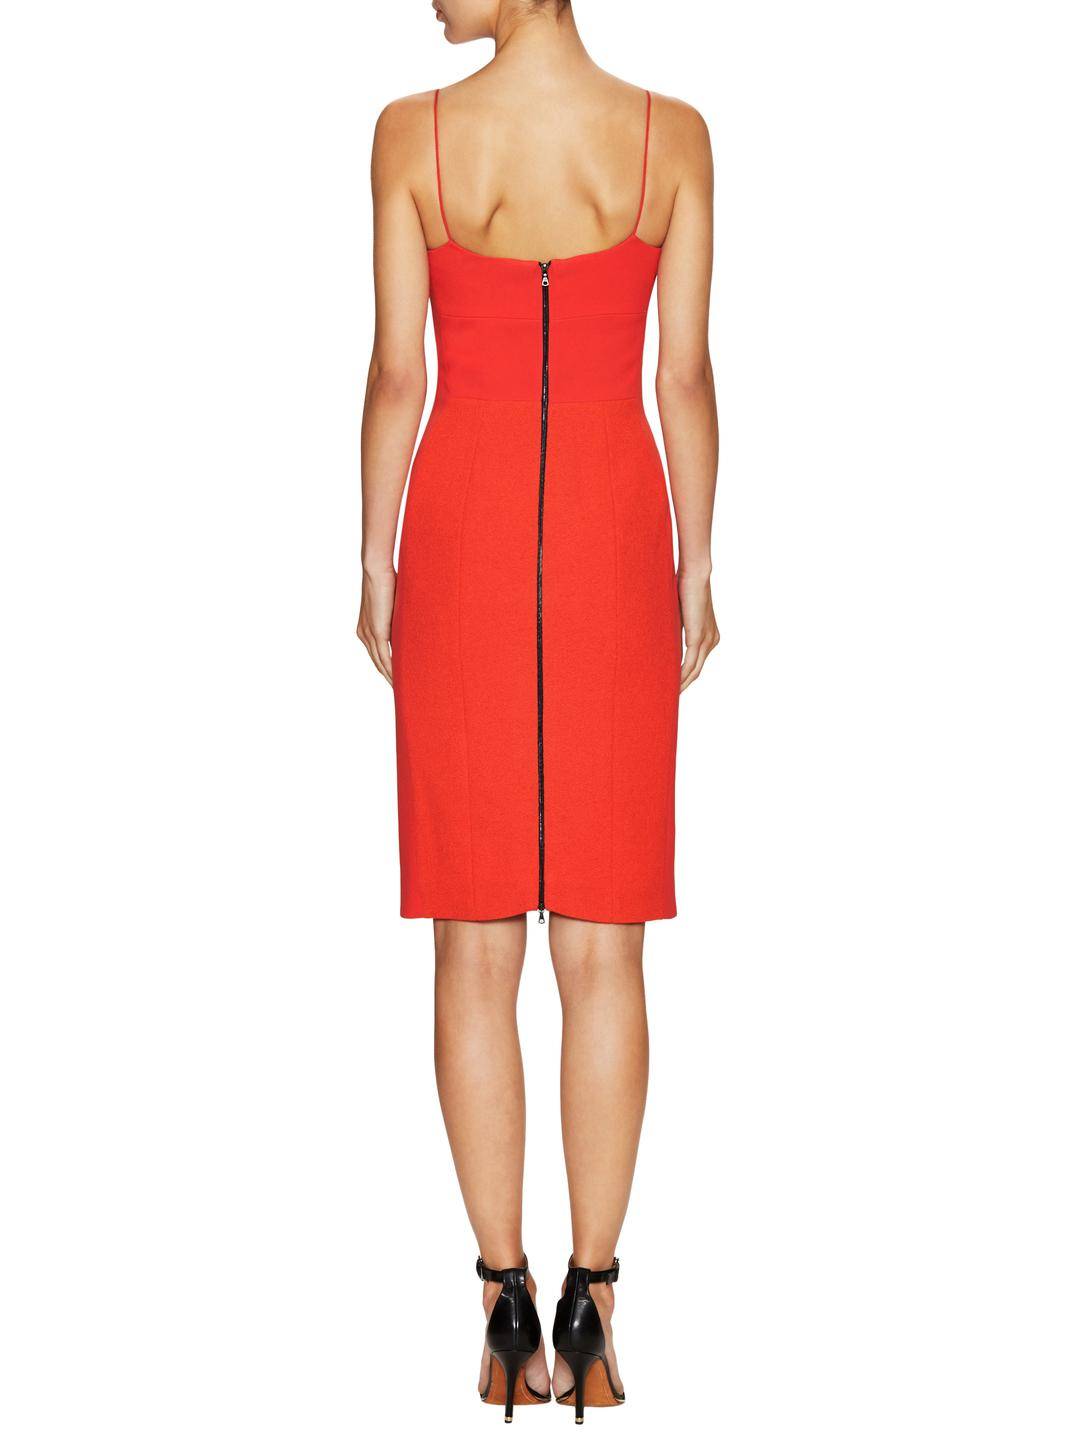 2caad70717f Narciso Rodriguez Wool Bustier Dress in Red - Lyst